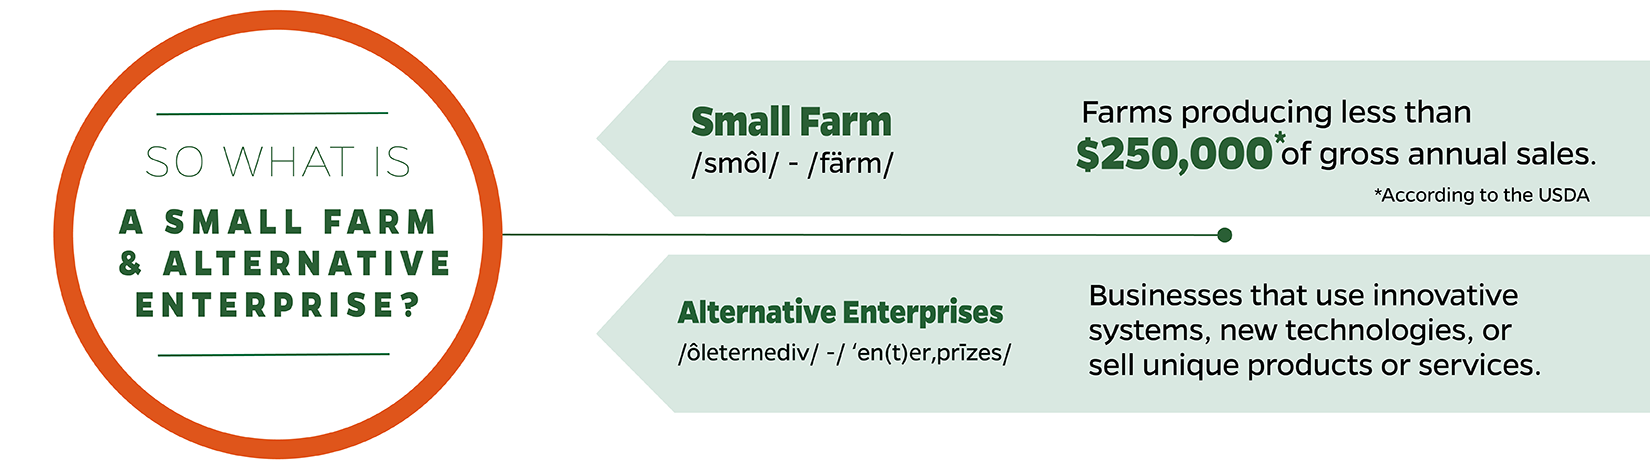 So what is a small farm and alternative enterprise? Small farm - a farm producing less than $250,000 in annual sales. Alternative Enterprise - business that uses innovative systems, new technology, or sells a unique product or service.